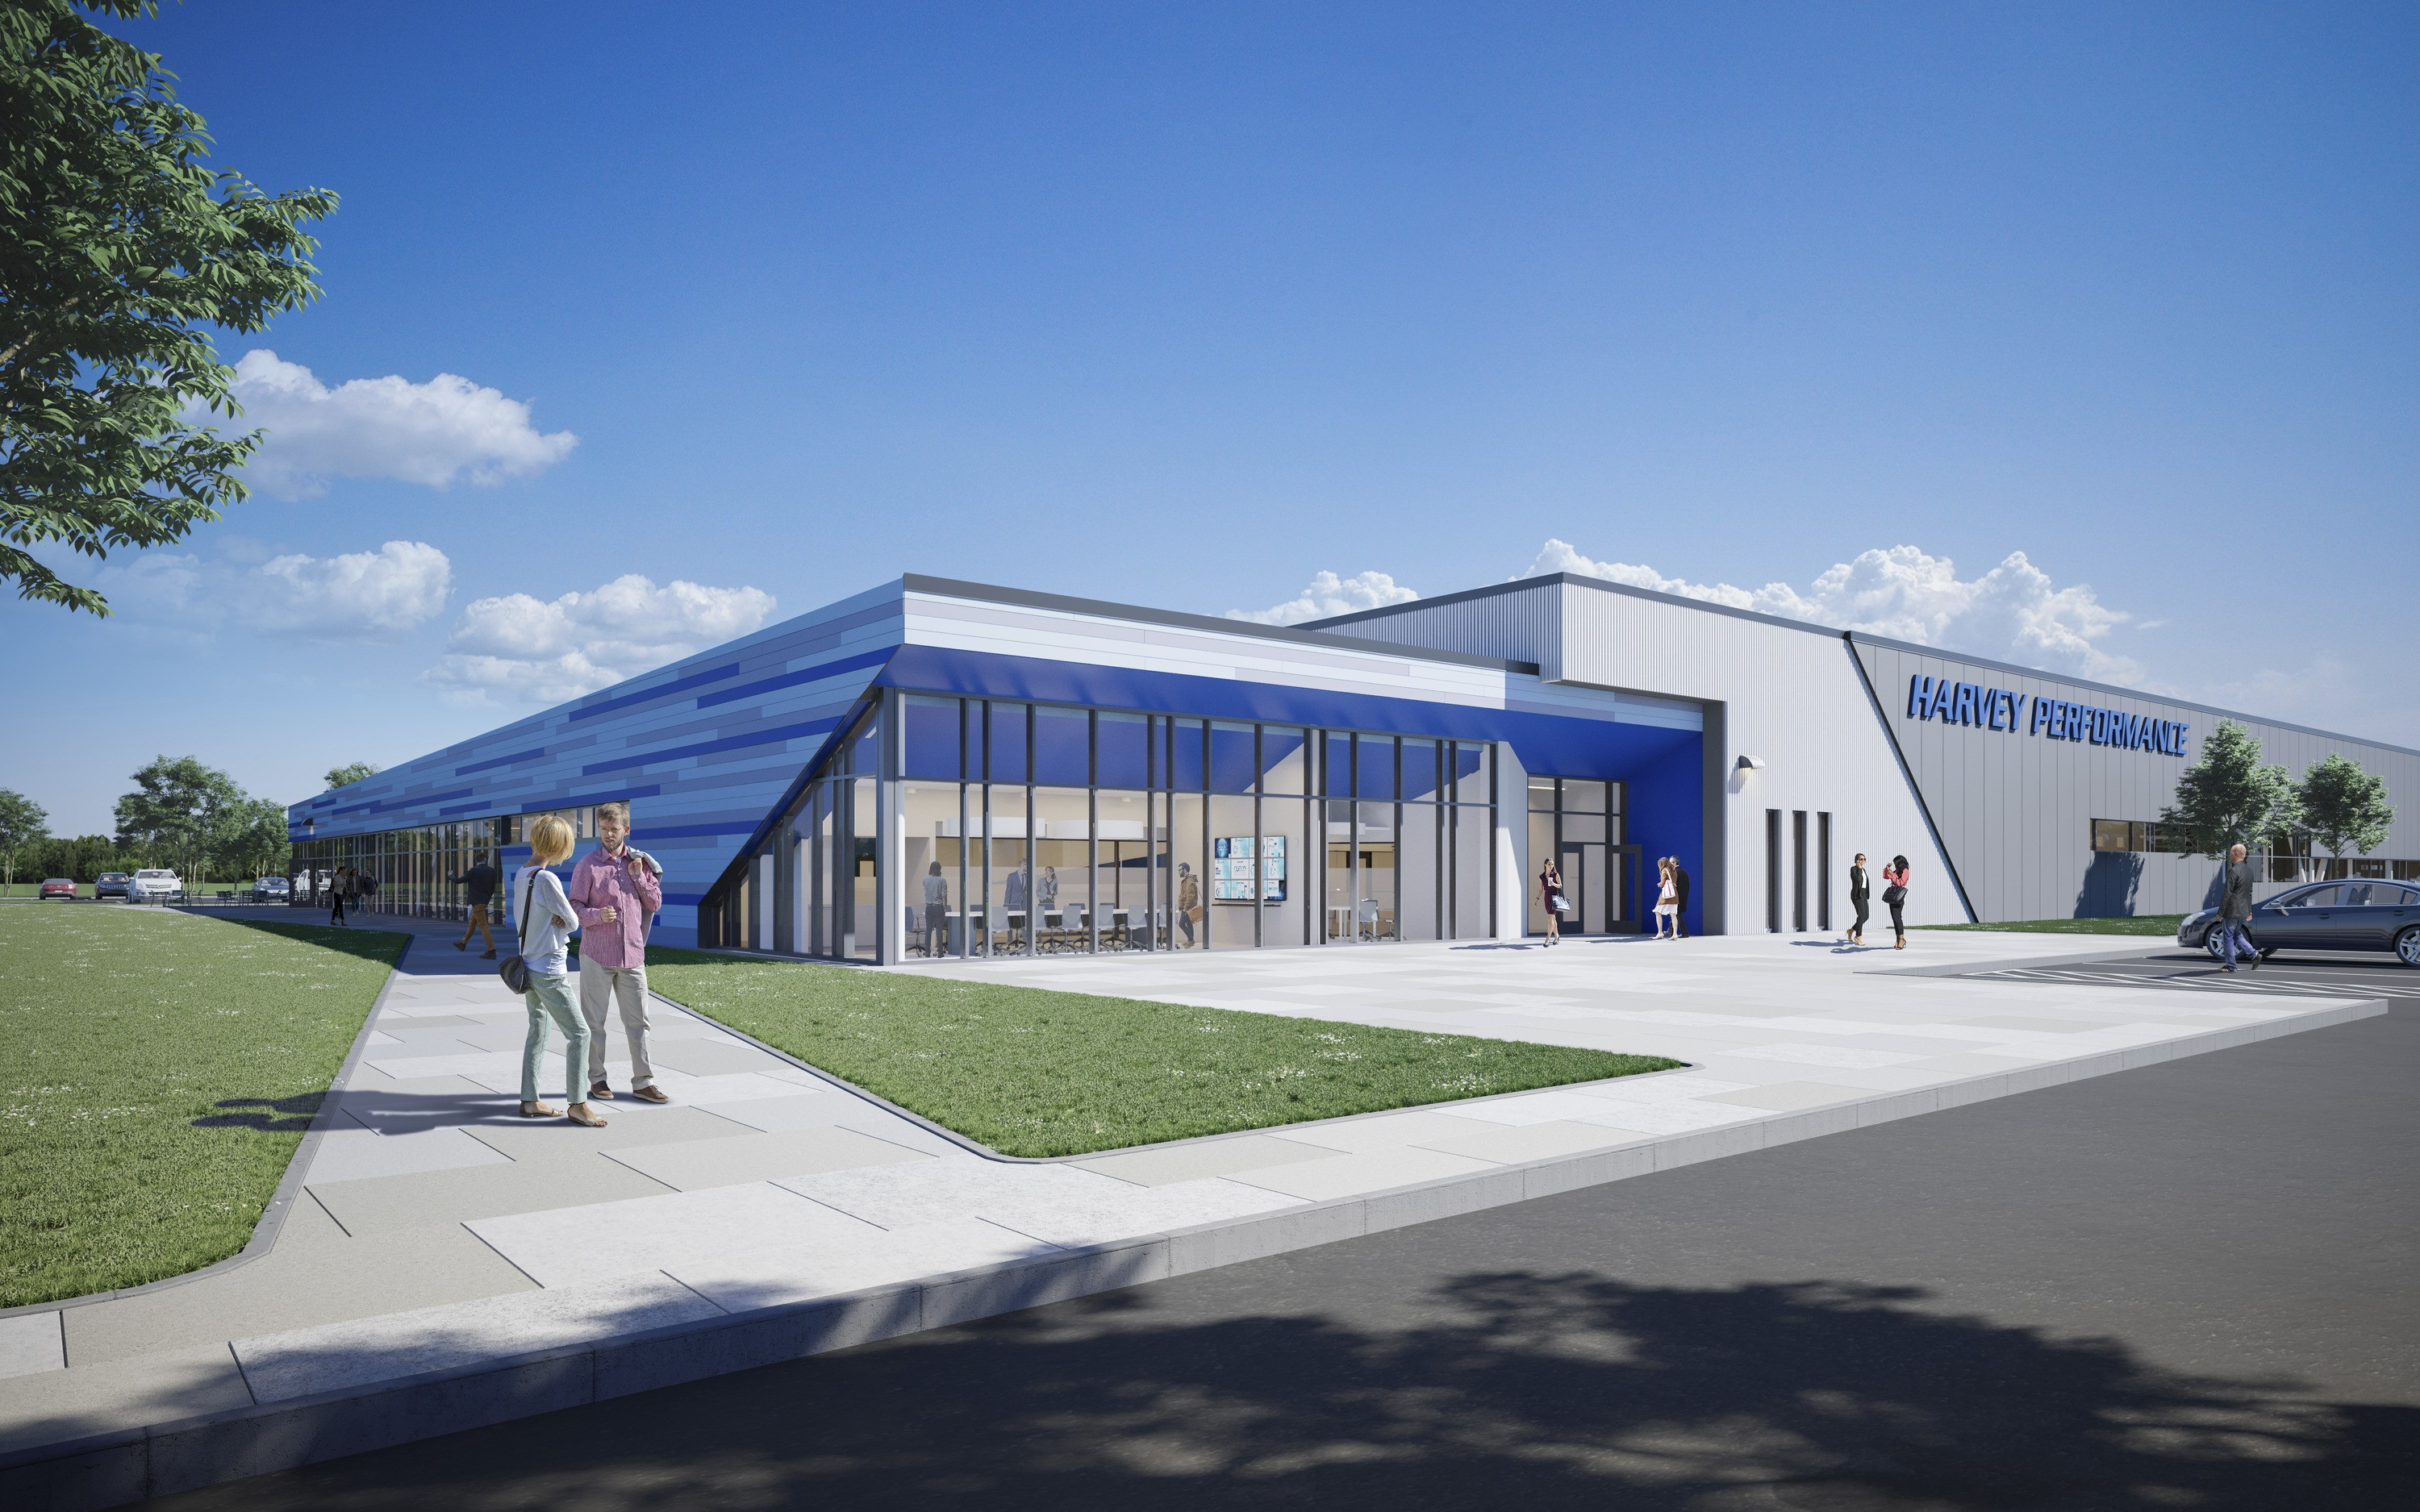 SMMA designed the Harvey Performance Facility in Gorham, Maine.